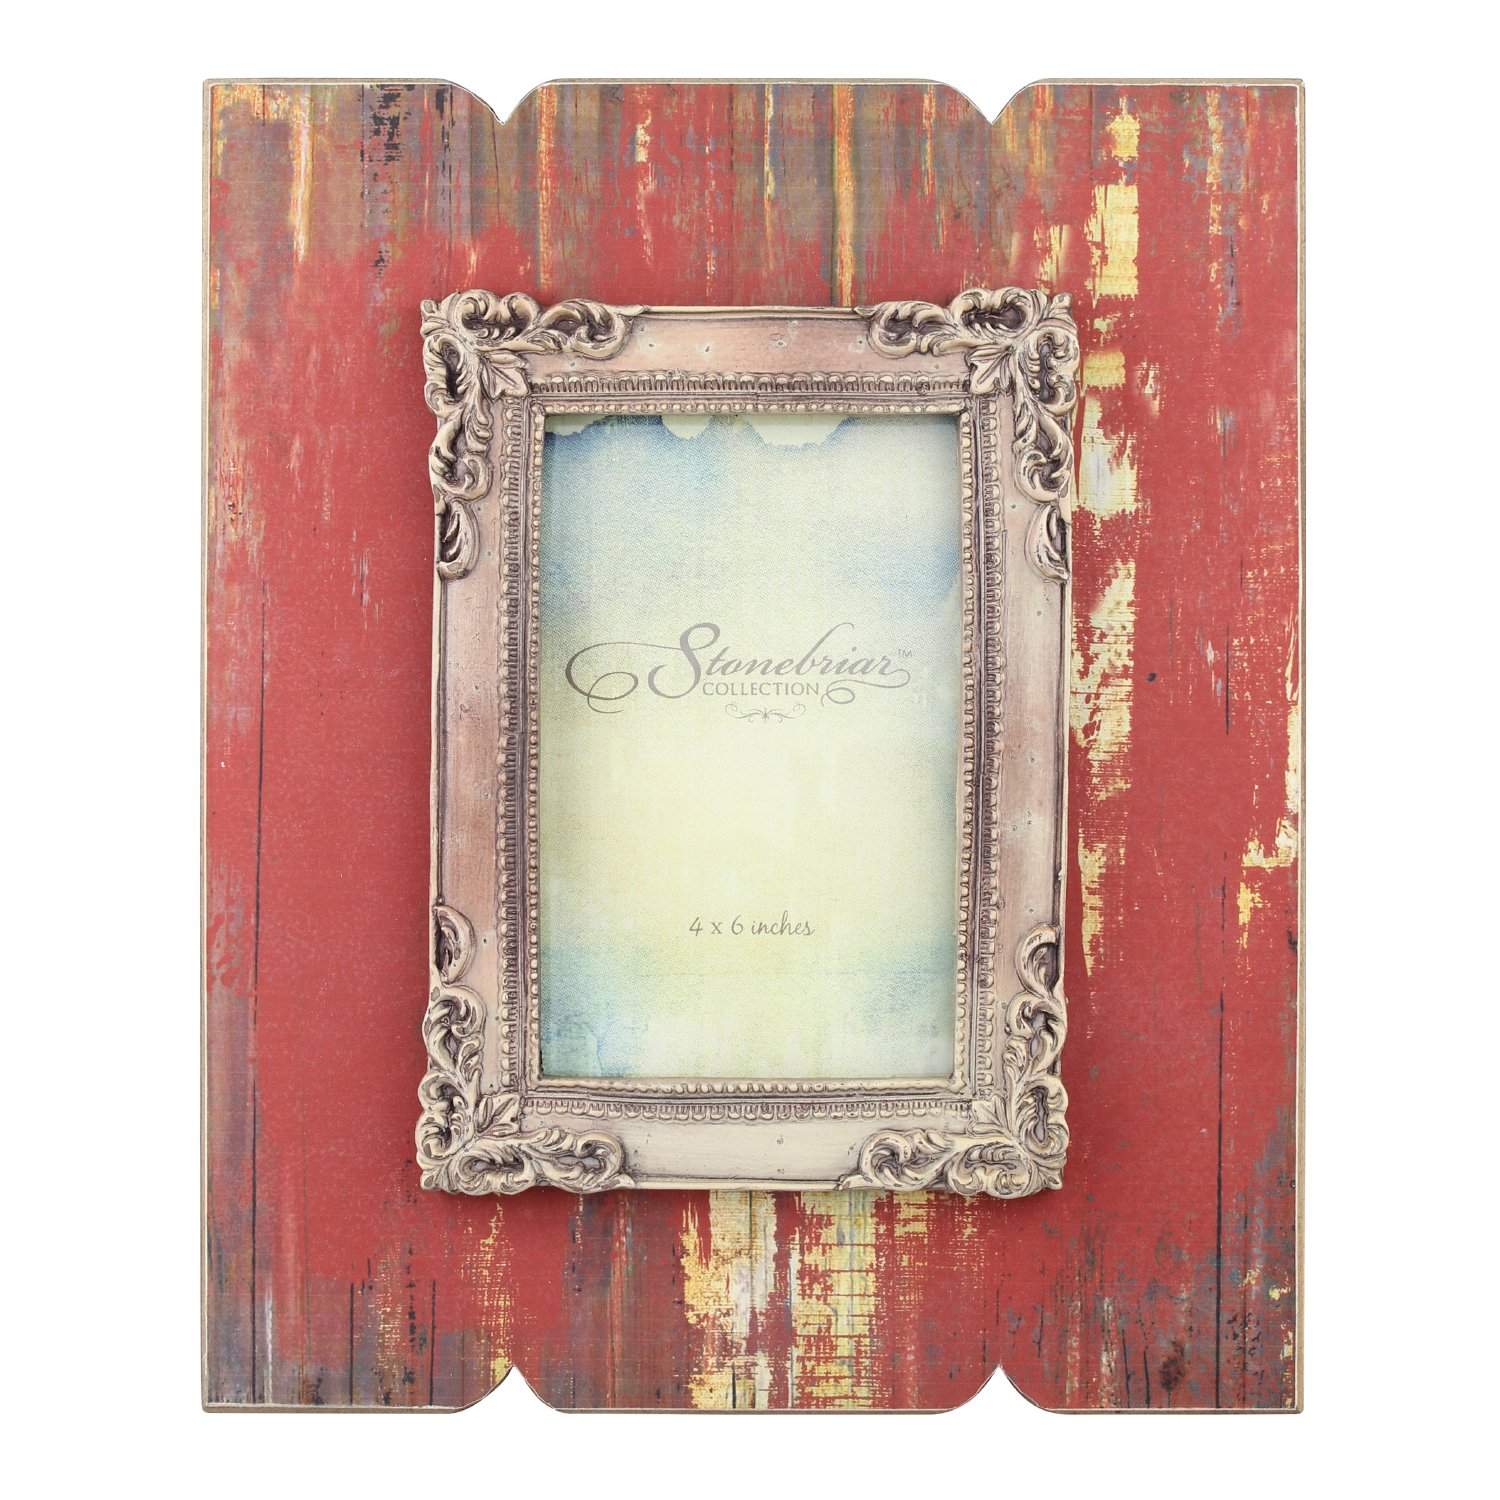 Stonebriar Distressed Red Wood Frame with Vintage Decorative Trim by Stonebriar